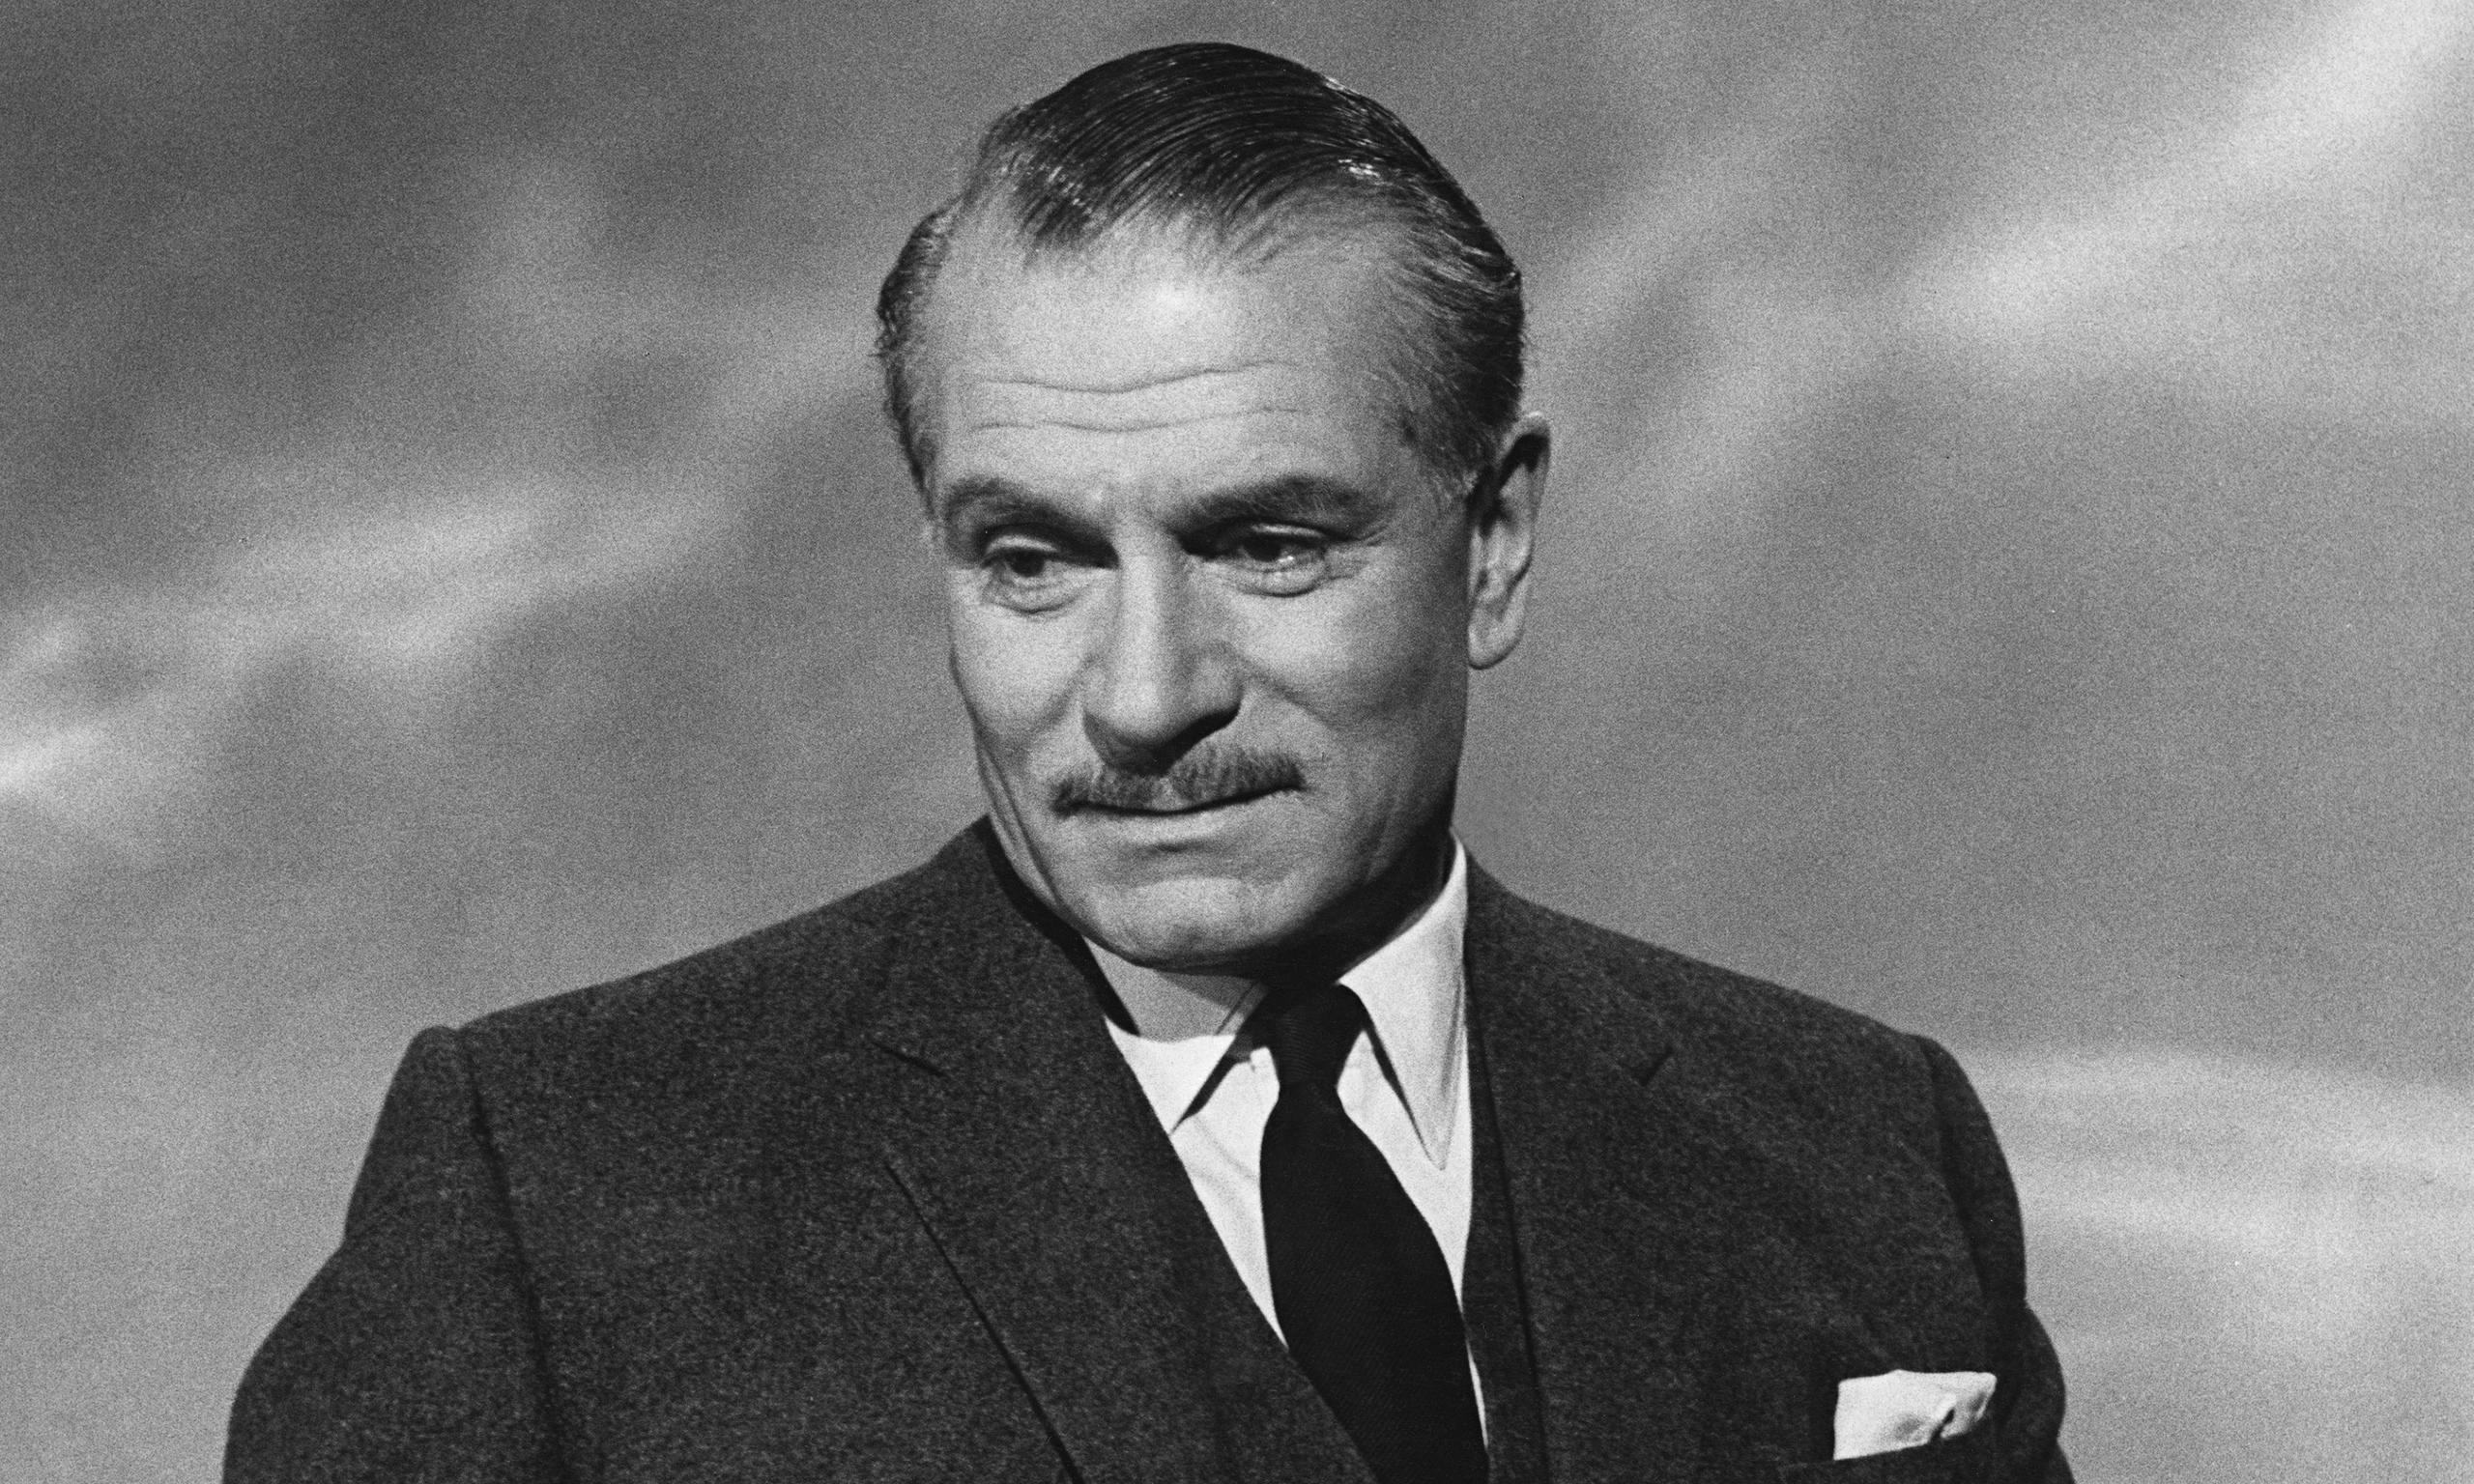 Laurence Olivier  hd wallpaper Wallpaper